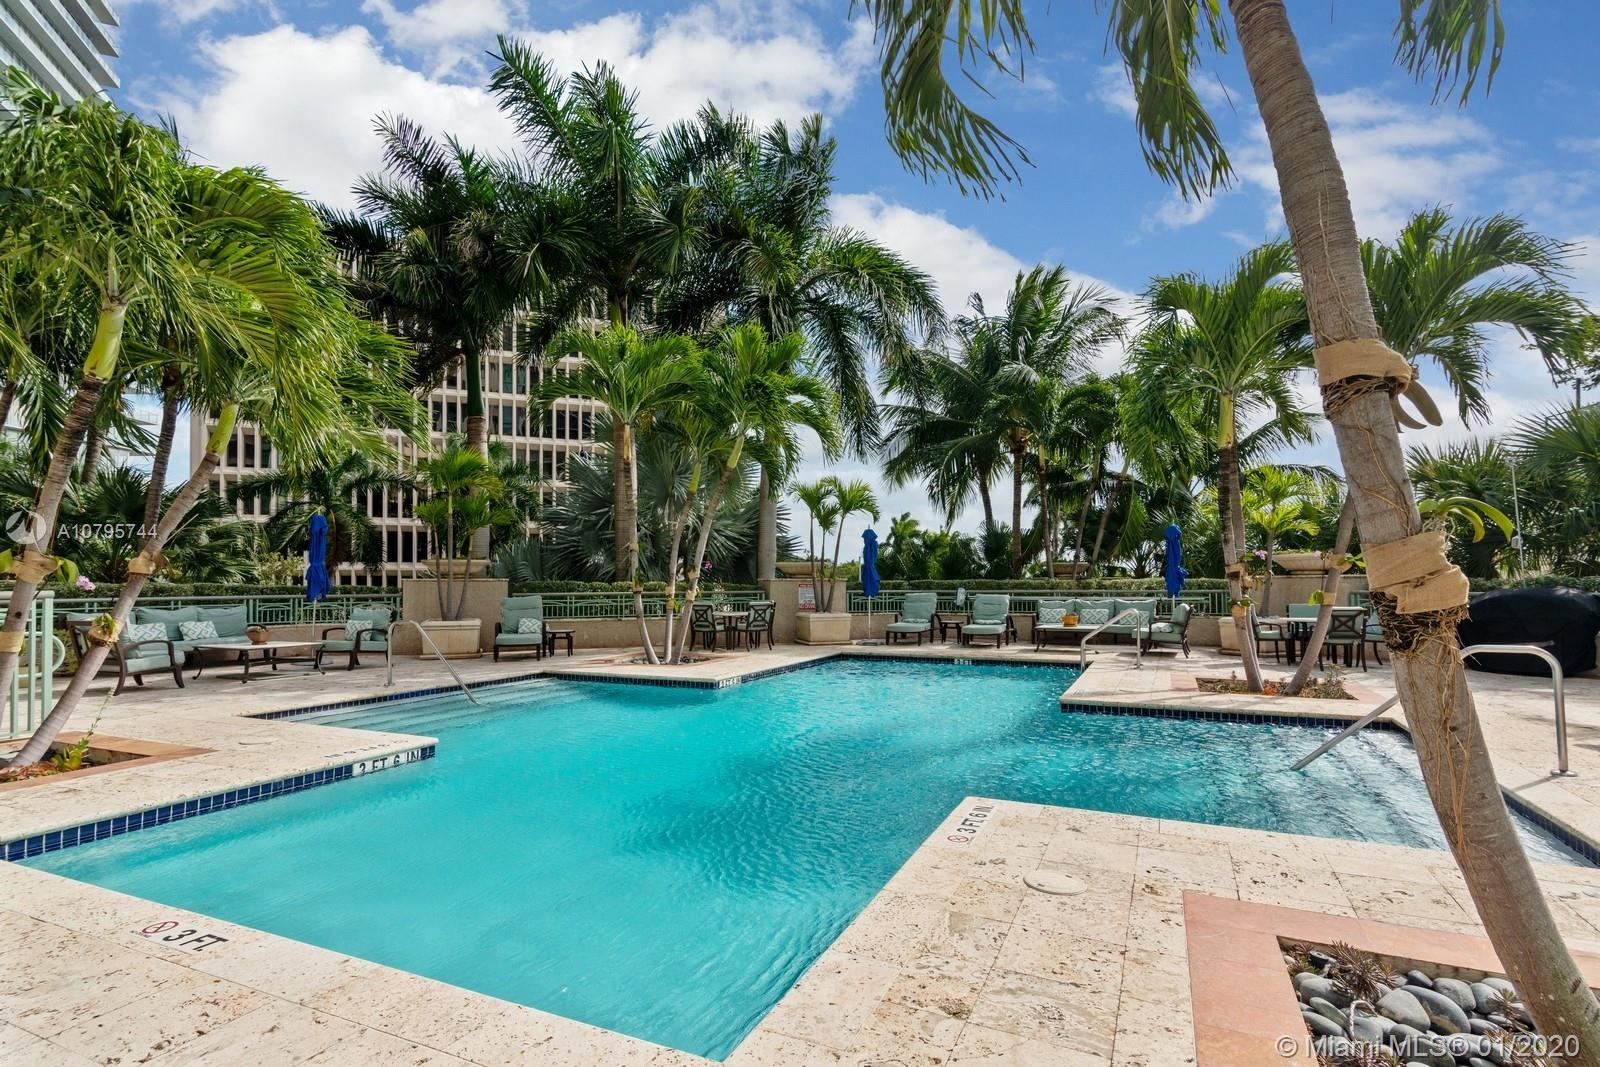 Your opportunity to own at the Elegant and Classic Ritz-Carlton Tower Residences Coconut Grove which offers the privacy of a small boutique building as well as access to the 5-Star amenities at the Ritz-Carlton Hotel next door. Walk or bike to nearby waterfront parks, restaurants and shopping. Close to Miami International Airport and Downtown Miami. Enjoy split master en-suite bedrooms and living area opening unto a private 800 sq. ft. outdoor garden patio perfect for entertaining, gardening and dining alfresco! Unit features elegant entry foyer, marble floors, Poggenpohl cabinetry, custom closets by Innerspace, custom millwork, impact glass and hurricane shutters. The Tower offers 24 hour Concierge, Valet and Guest Parking, Gym and Heated Pool.